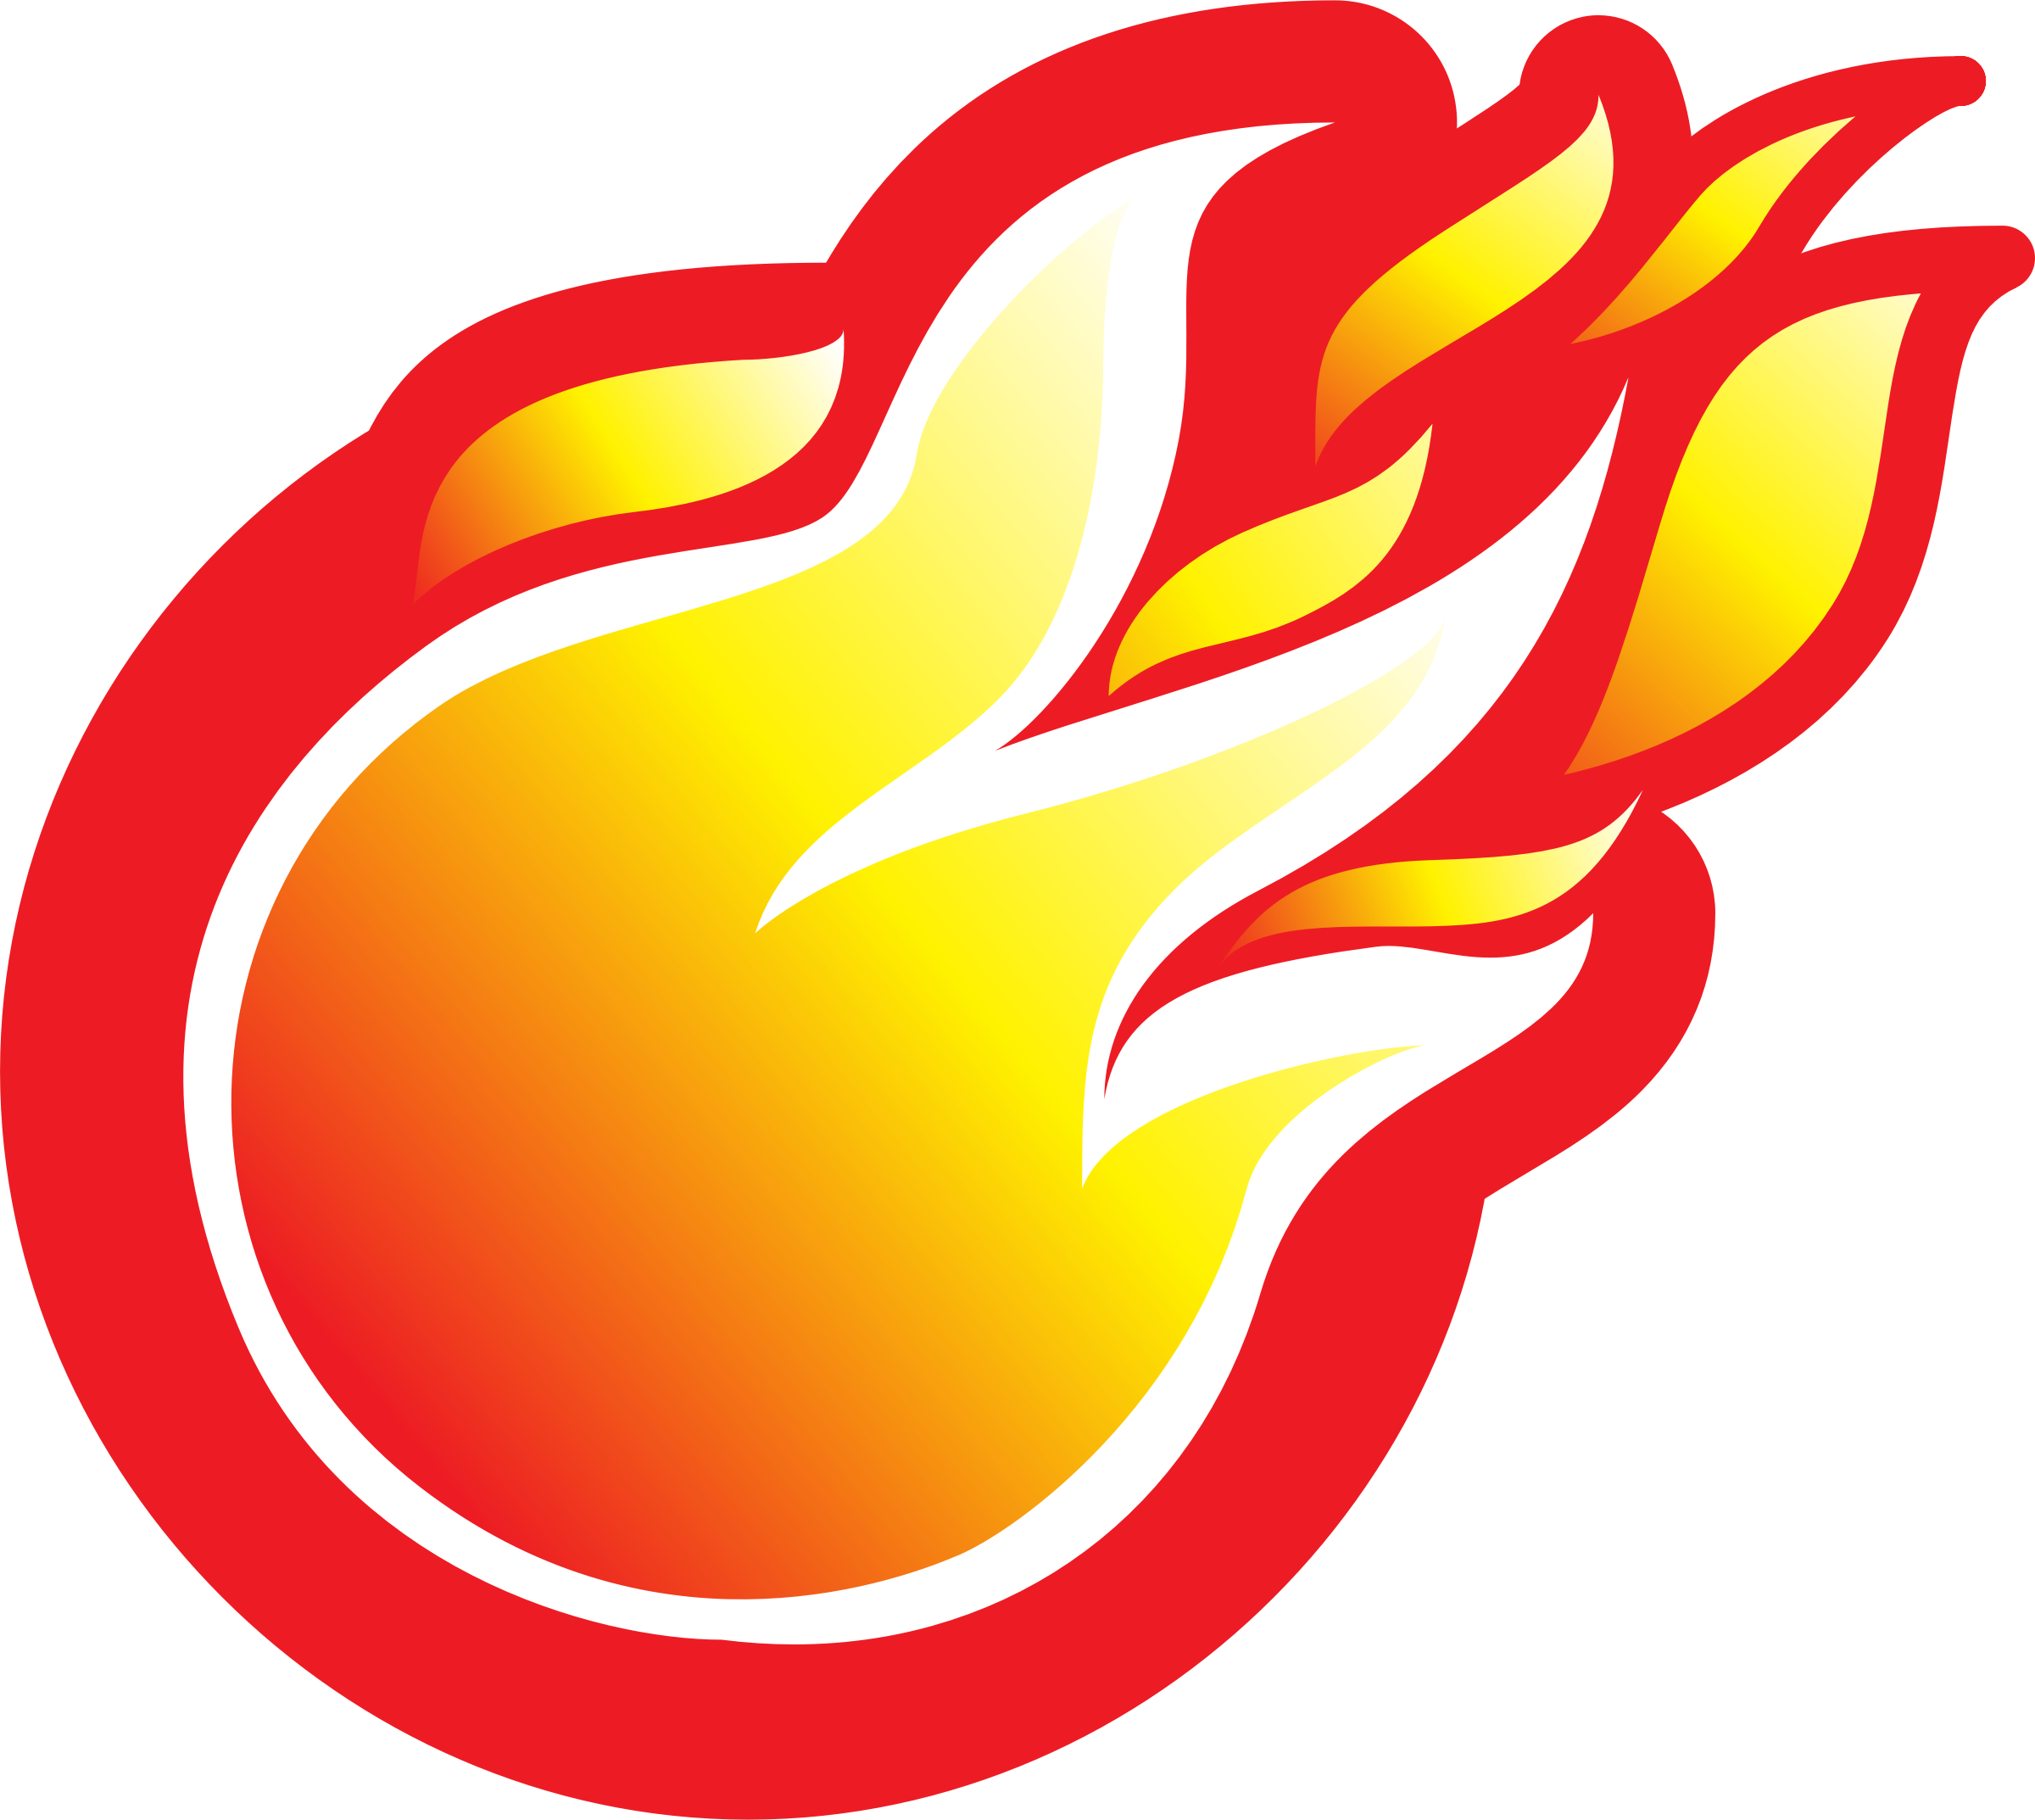 Flame Clipart - PNG Image #4341